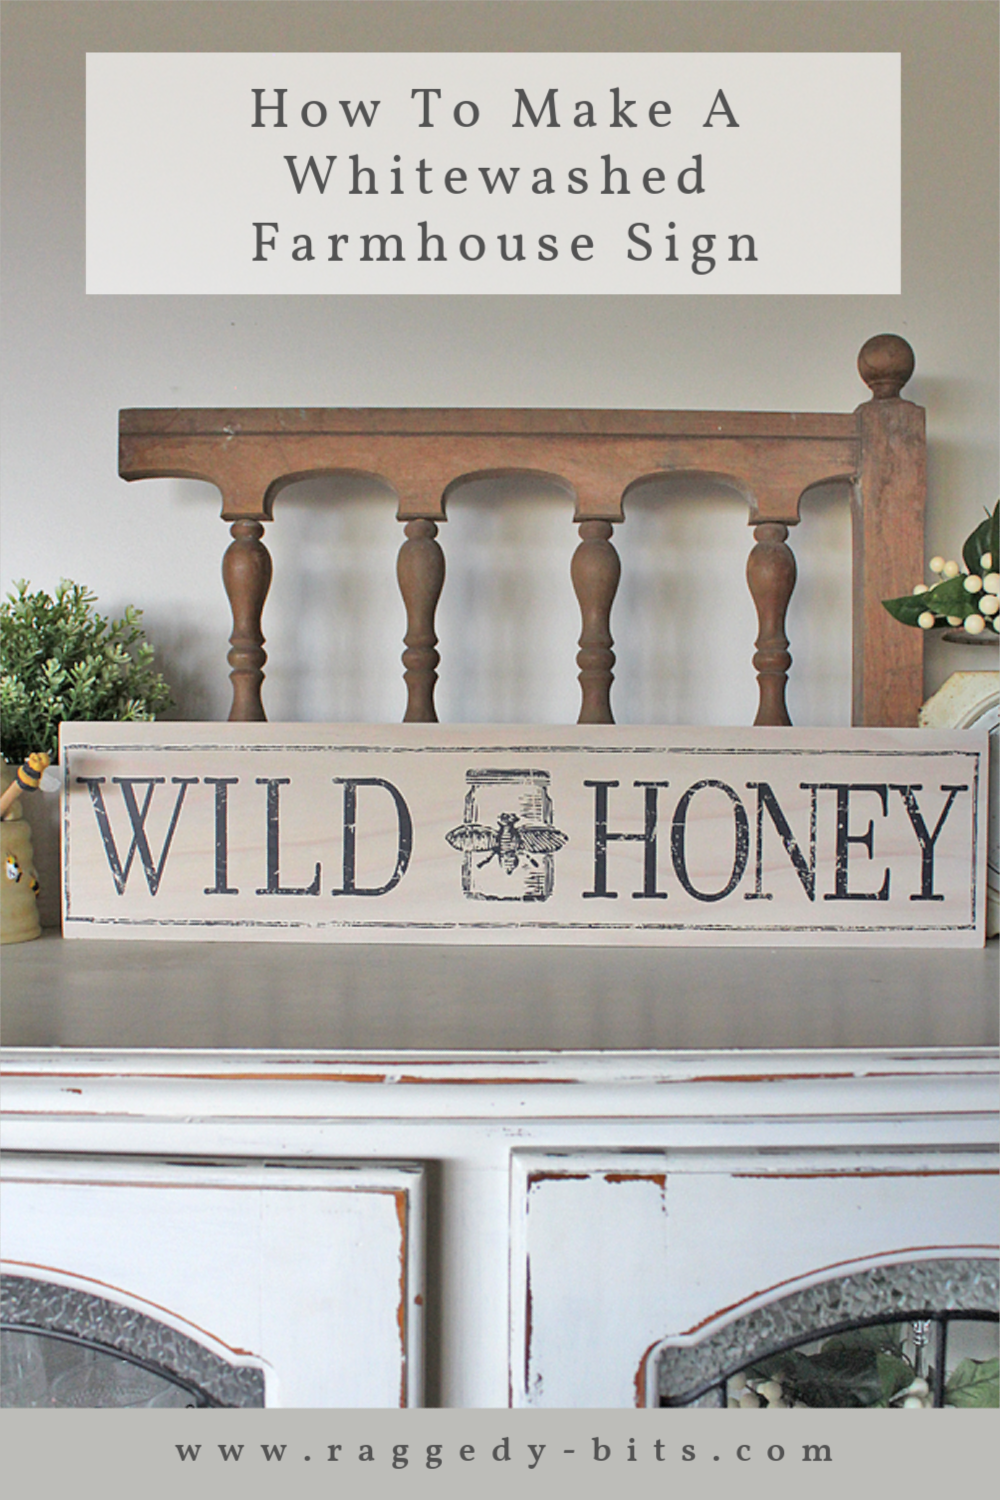 Sharing a fun easy way to make a whitewashed farmhouse sign using a decor transfer | www.raggedy-bits.com | #raggedybits #DIY #farmhouse #sign #whitewash #fusionmineralpaint #IOD #Champlain #FarmFresh